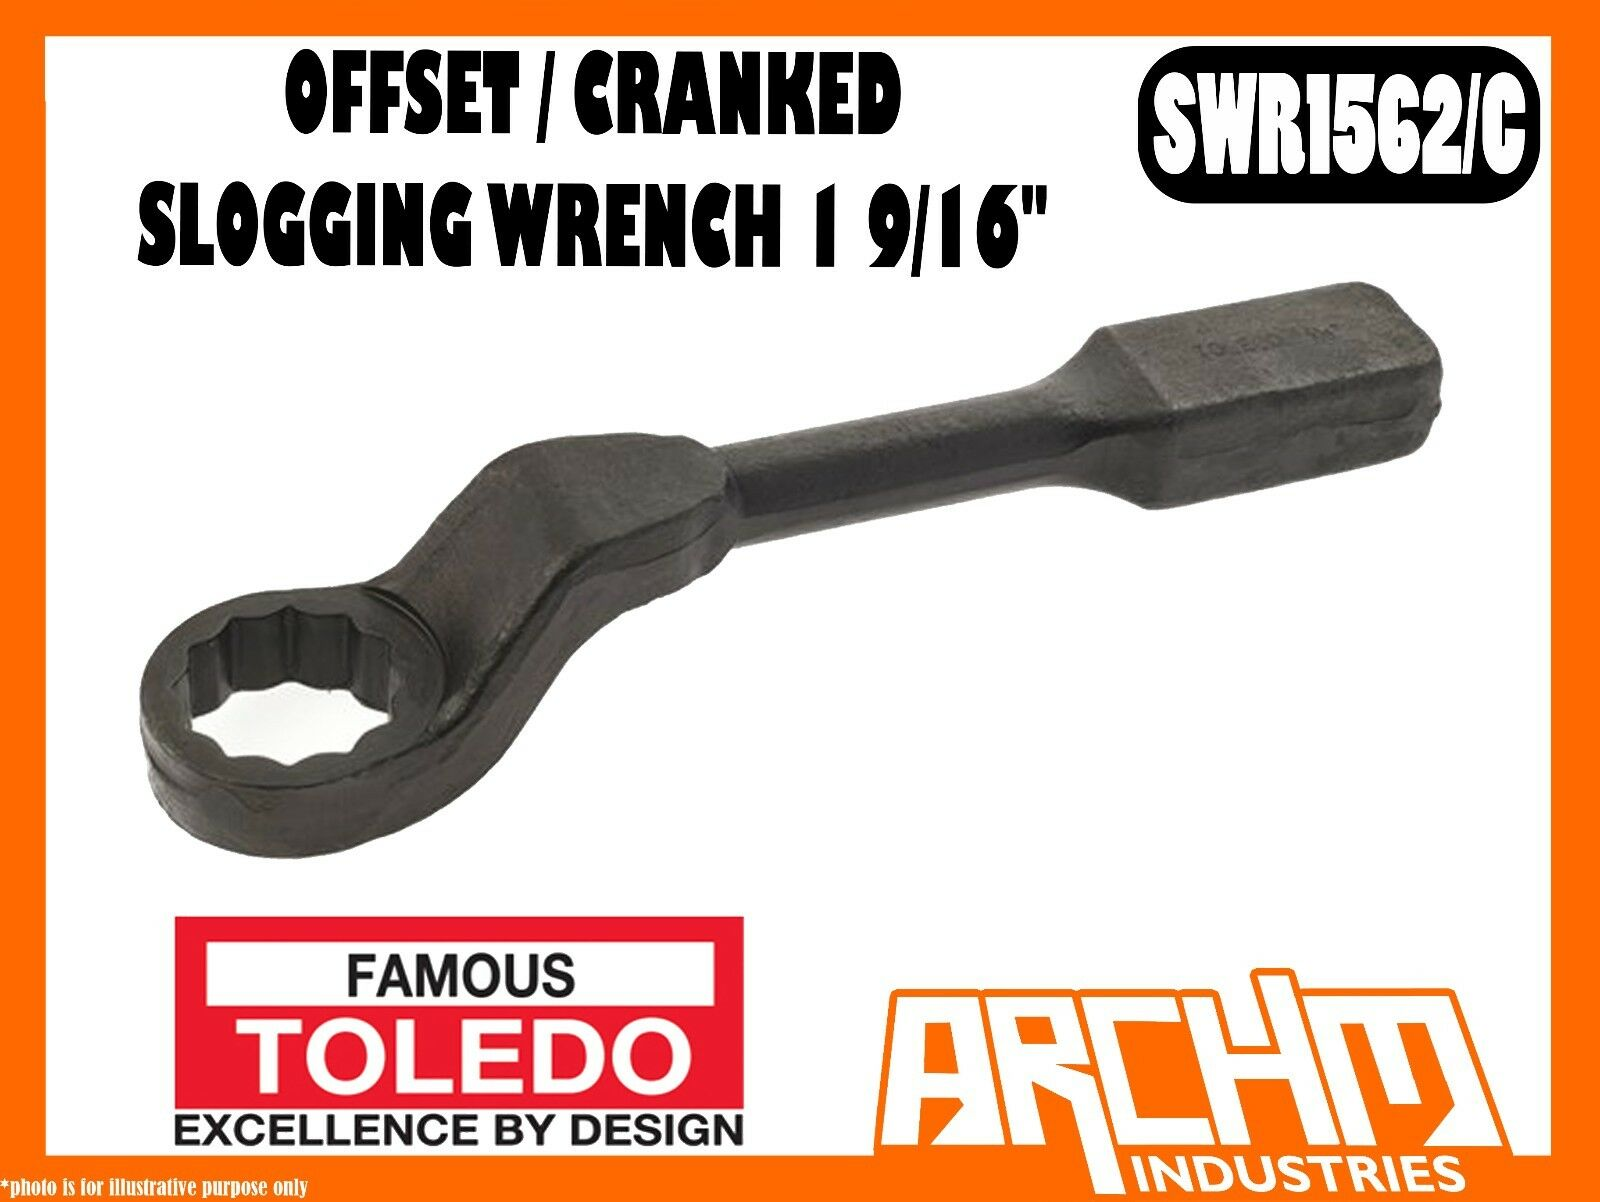 TOLEDO SWR1562 C - OFFSET   CRANKED SLOGGING WRENCH 1 9 16  - IMPERIAL